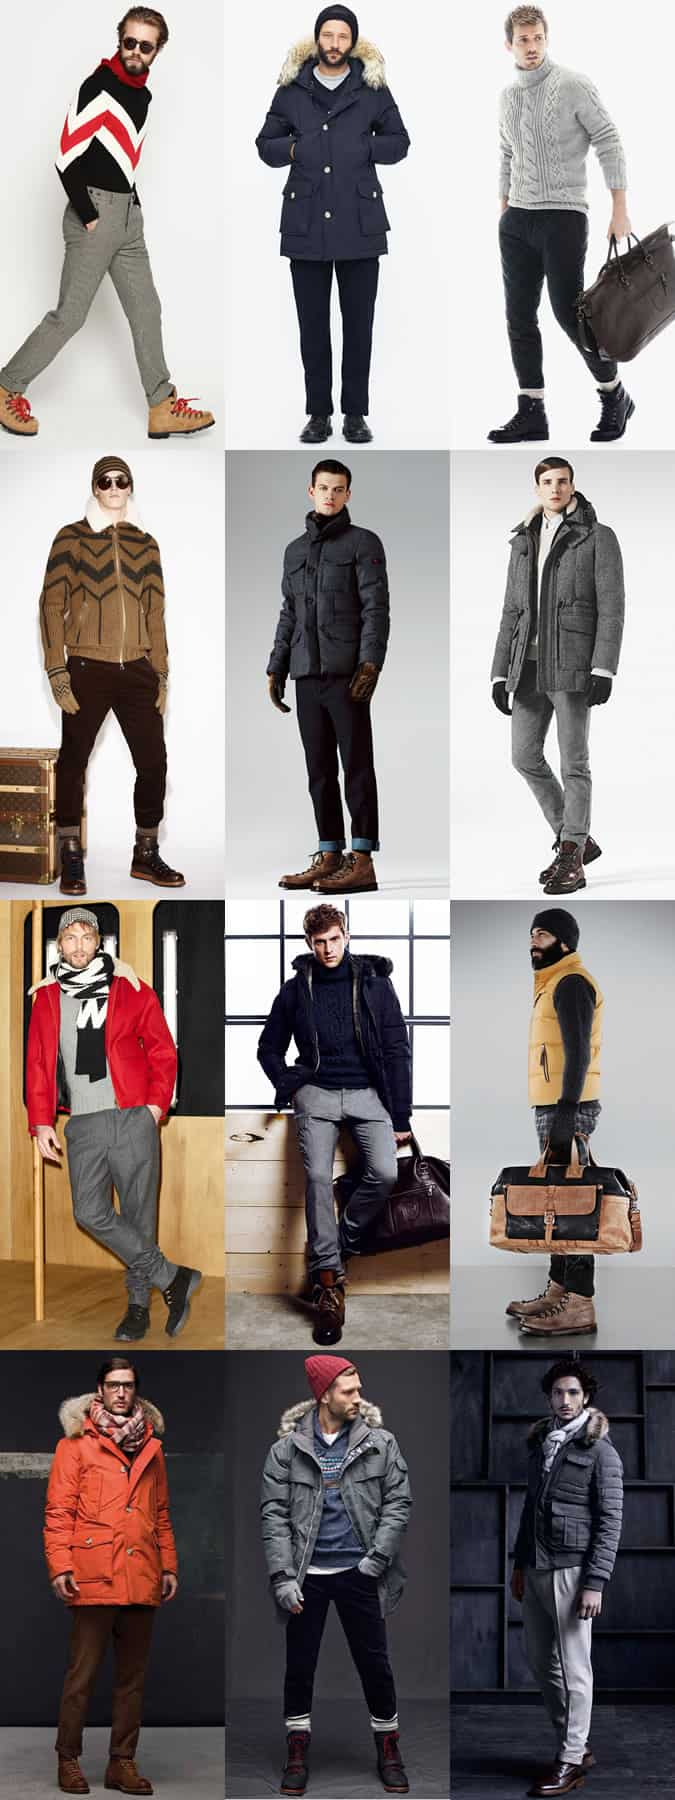 Men's Ski Holiday and Apres-Ski Outfit Inspiration Lookbook